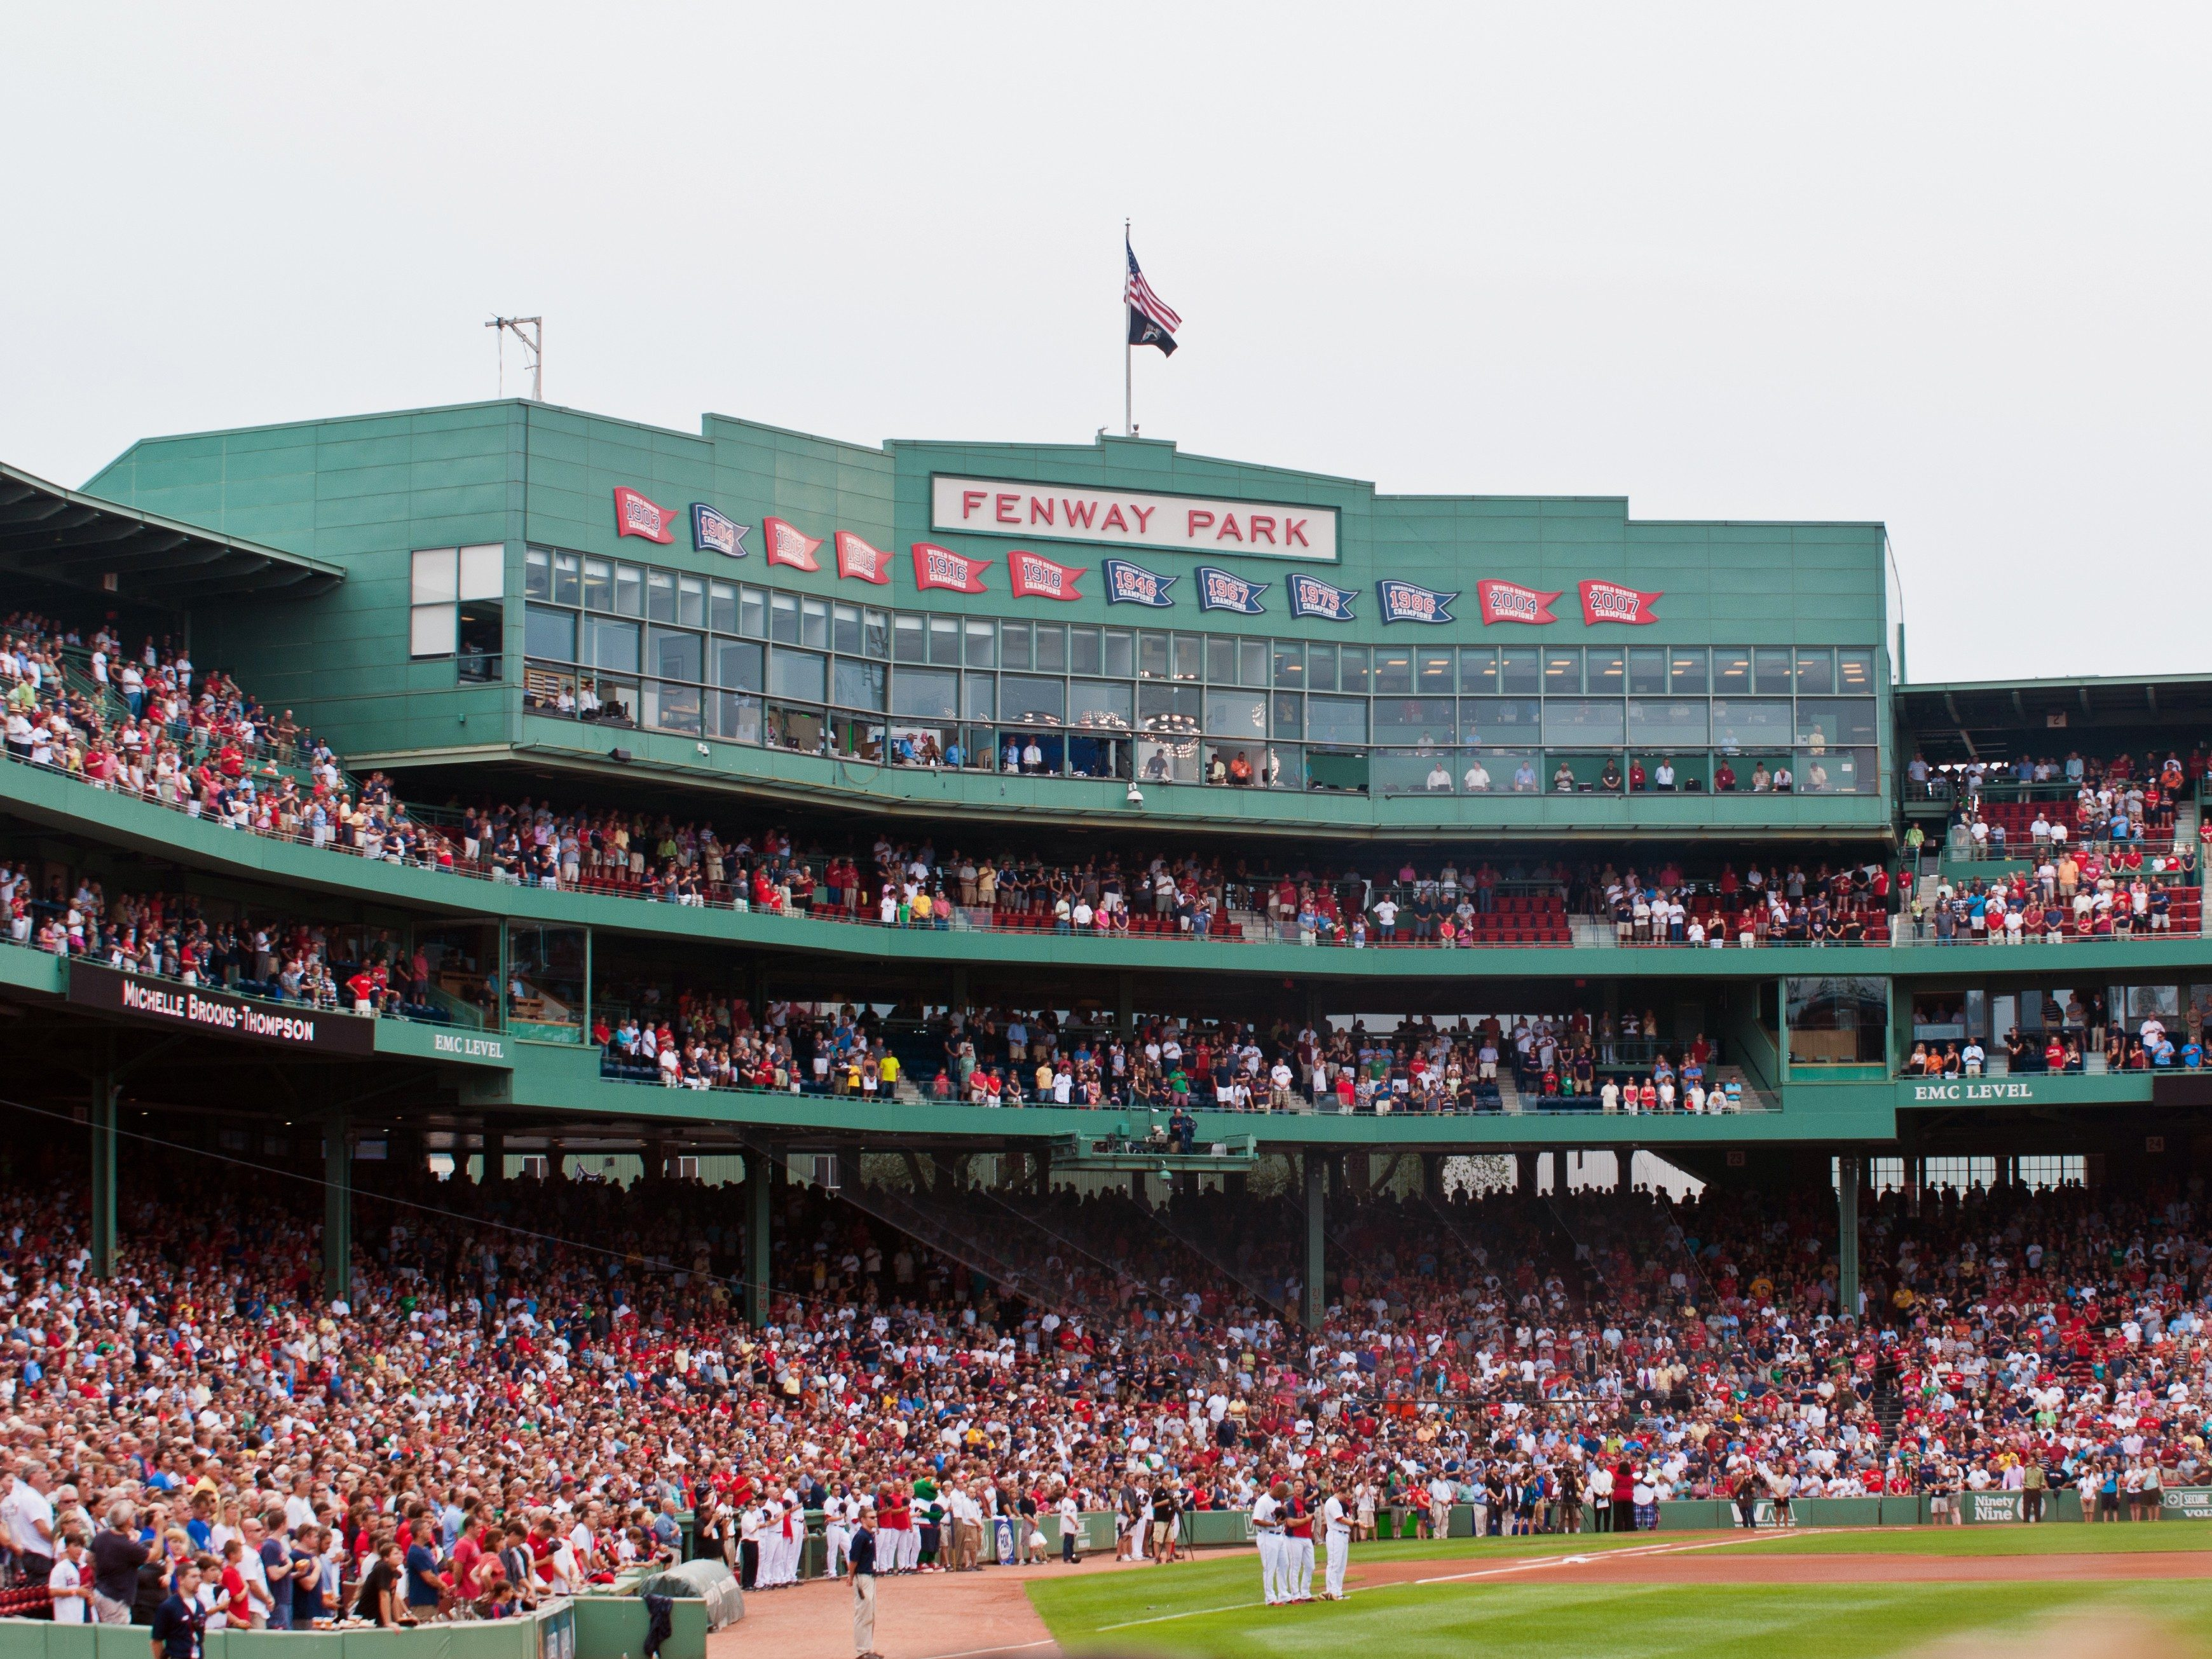 3. Fenway Park - Boston, Massachusetts; home of the Red Sox.